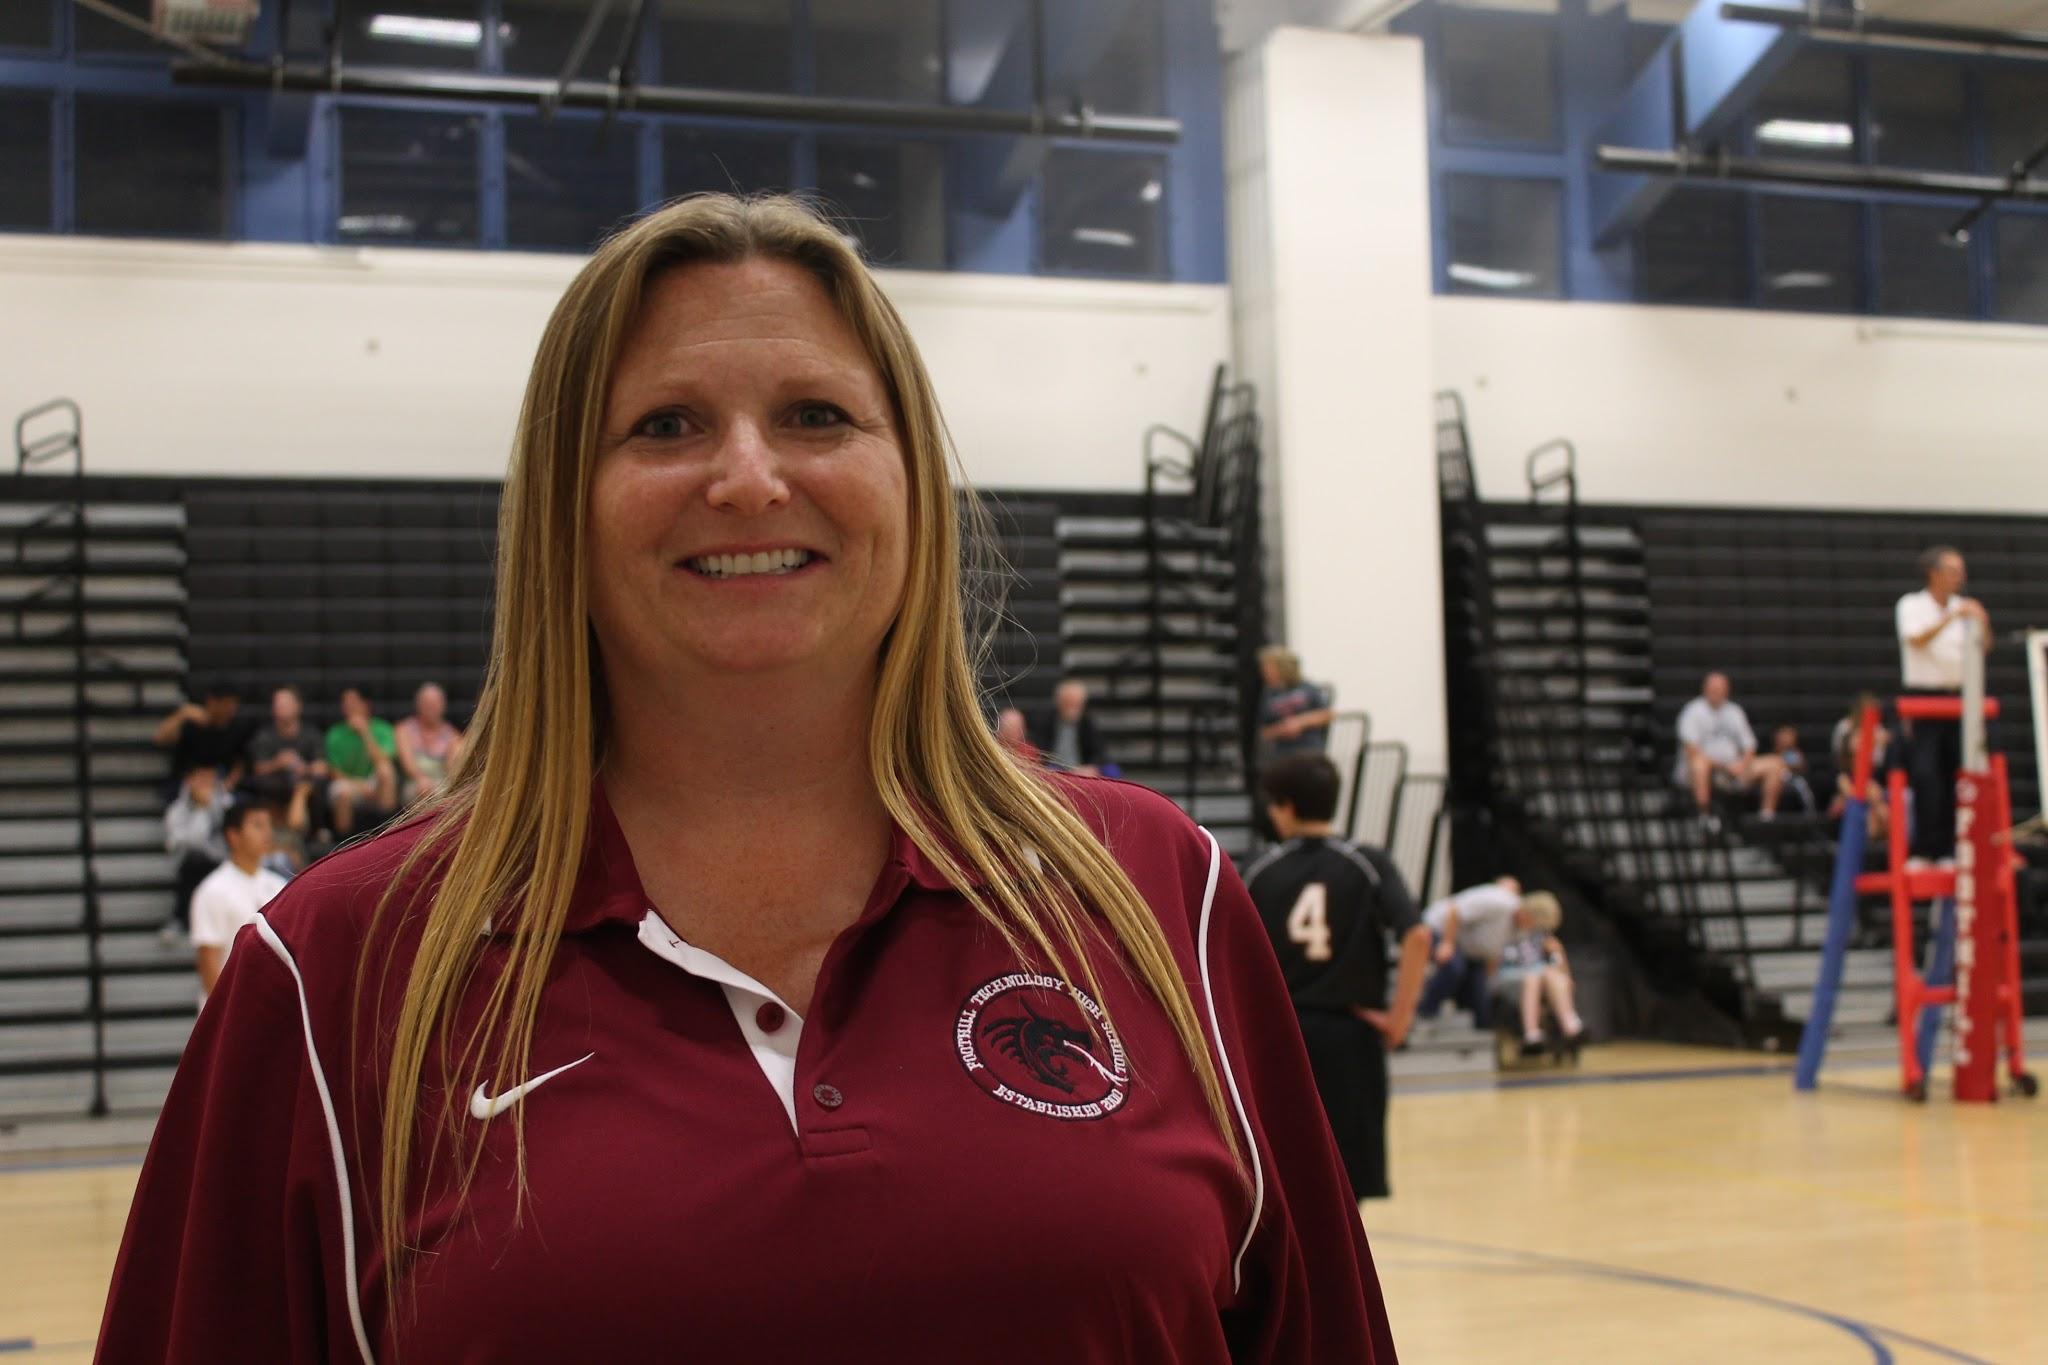 Coach Janine Cobian brings positivity and  ambition to Foothill's inaugural boys volleyball team. Credit: Sarah Kagan/The Foothill Dragon Press